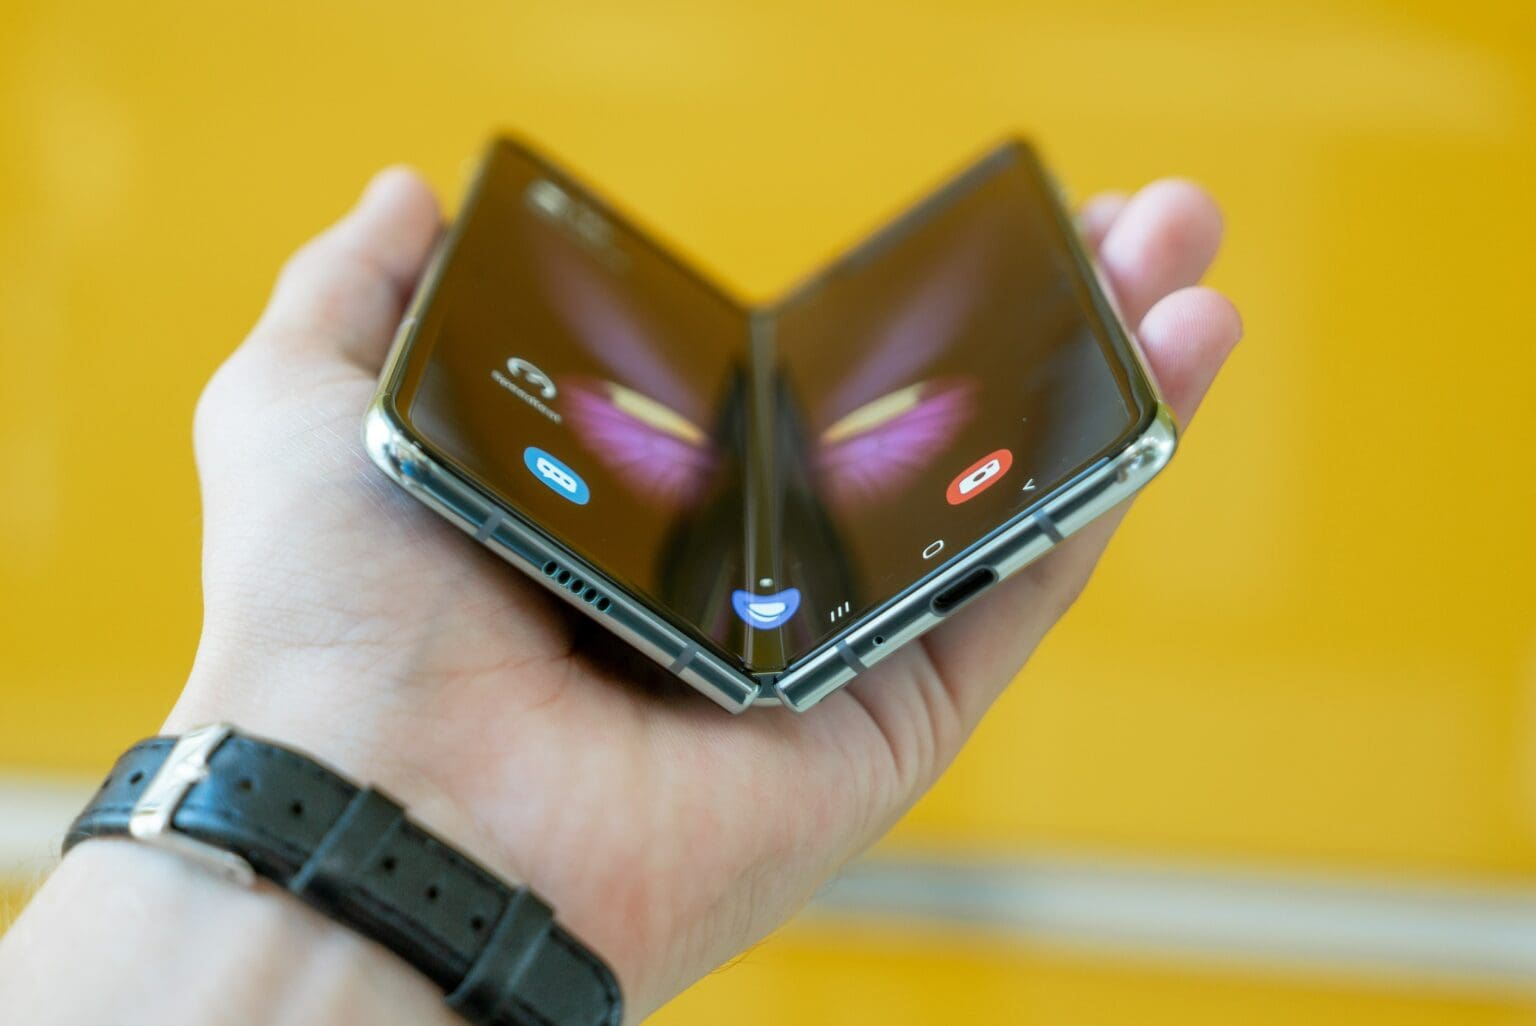 Why should Android users have all the folding fun?